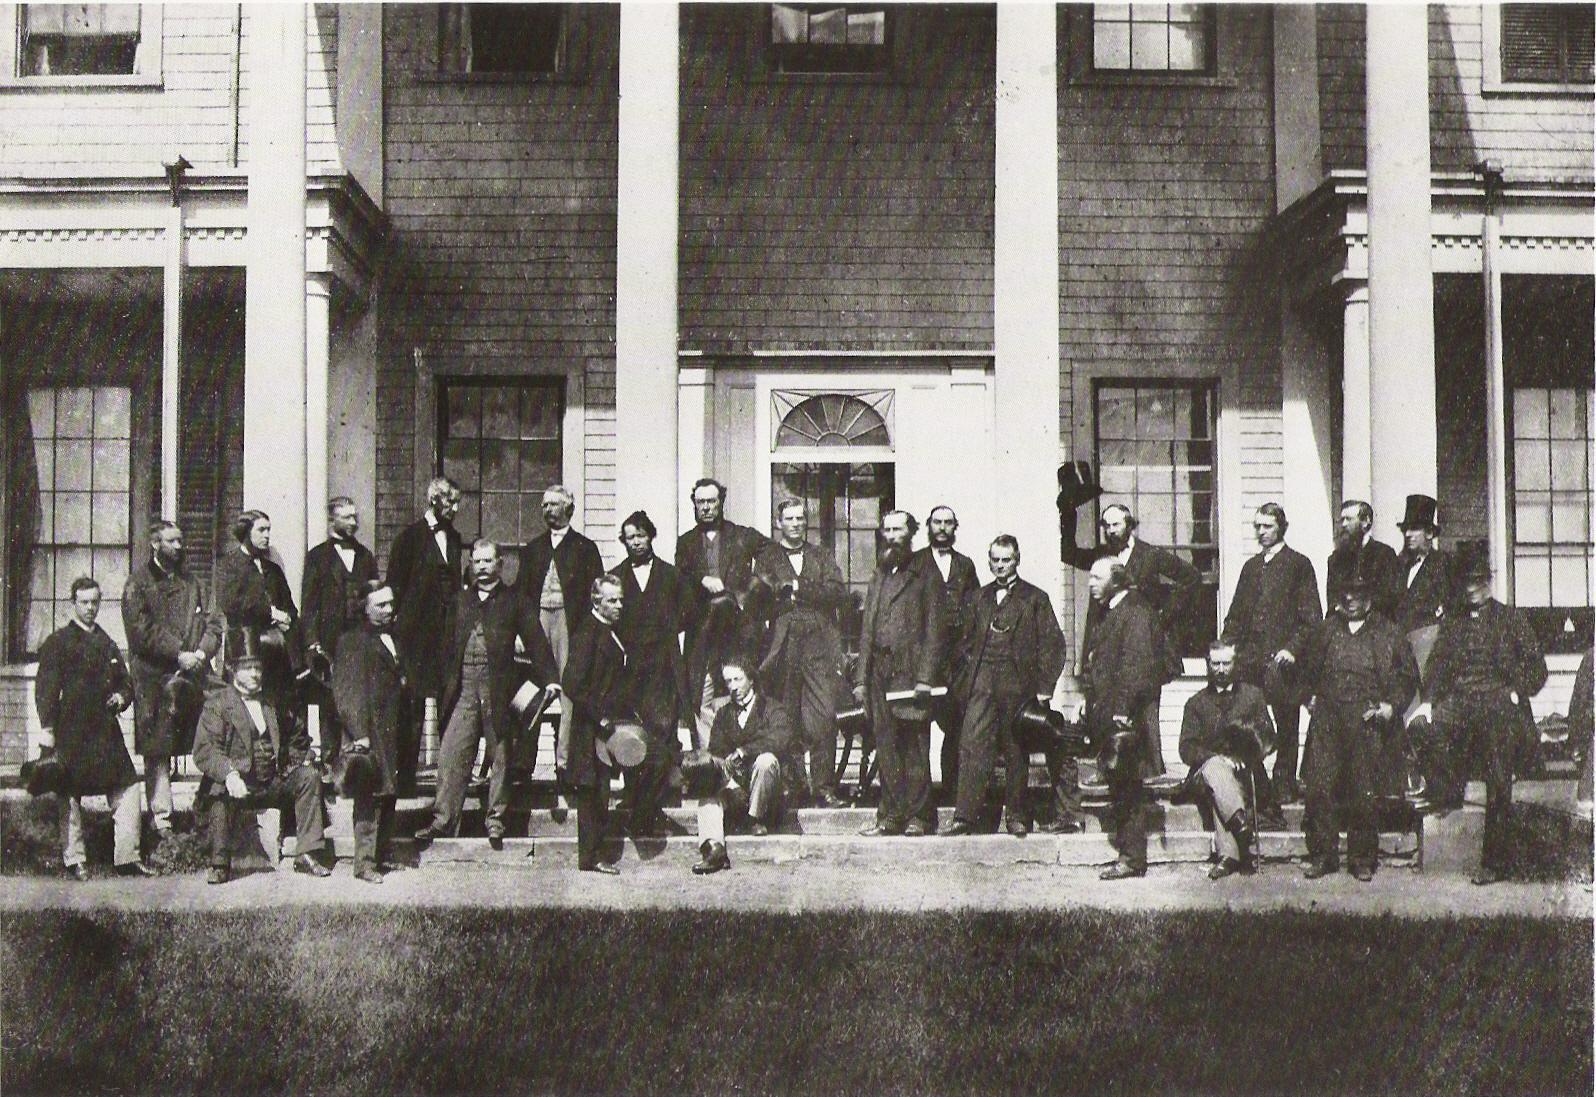 Canada's Fathers of Confederation posing on the steps of Fanningbank, the Lt. Governor's digs on the waterfront down by Victoria Park. Taken during the Charlottetown Conference in September, 1864. Note that this blog is NOT associated in any way with 2014 and the sesquicentennial (150th) celebrations. I just like the picture. And it plays on the title of the post.